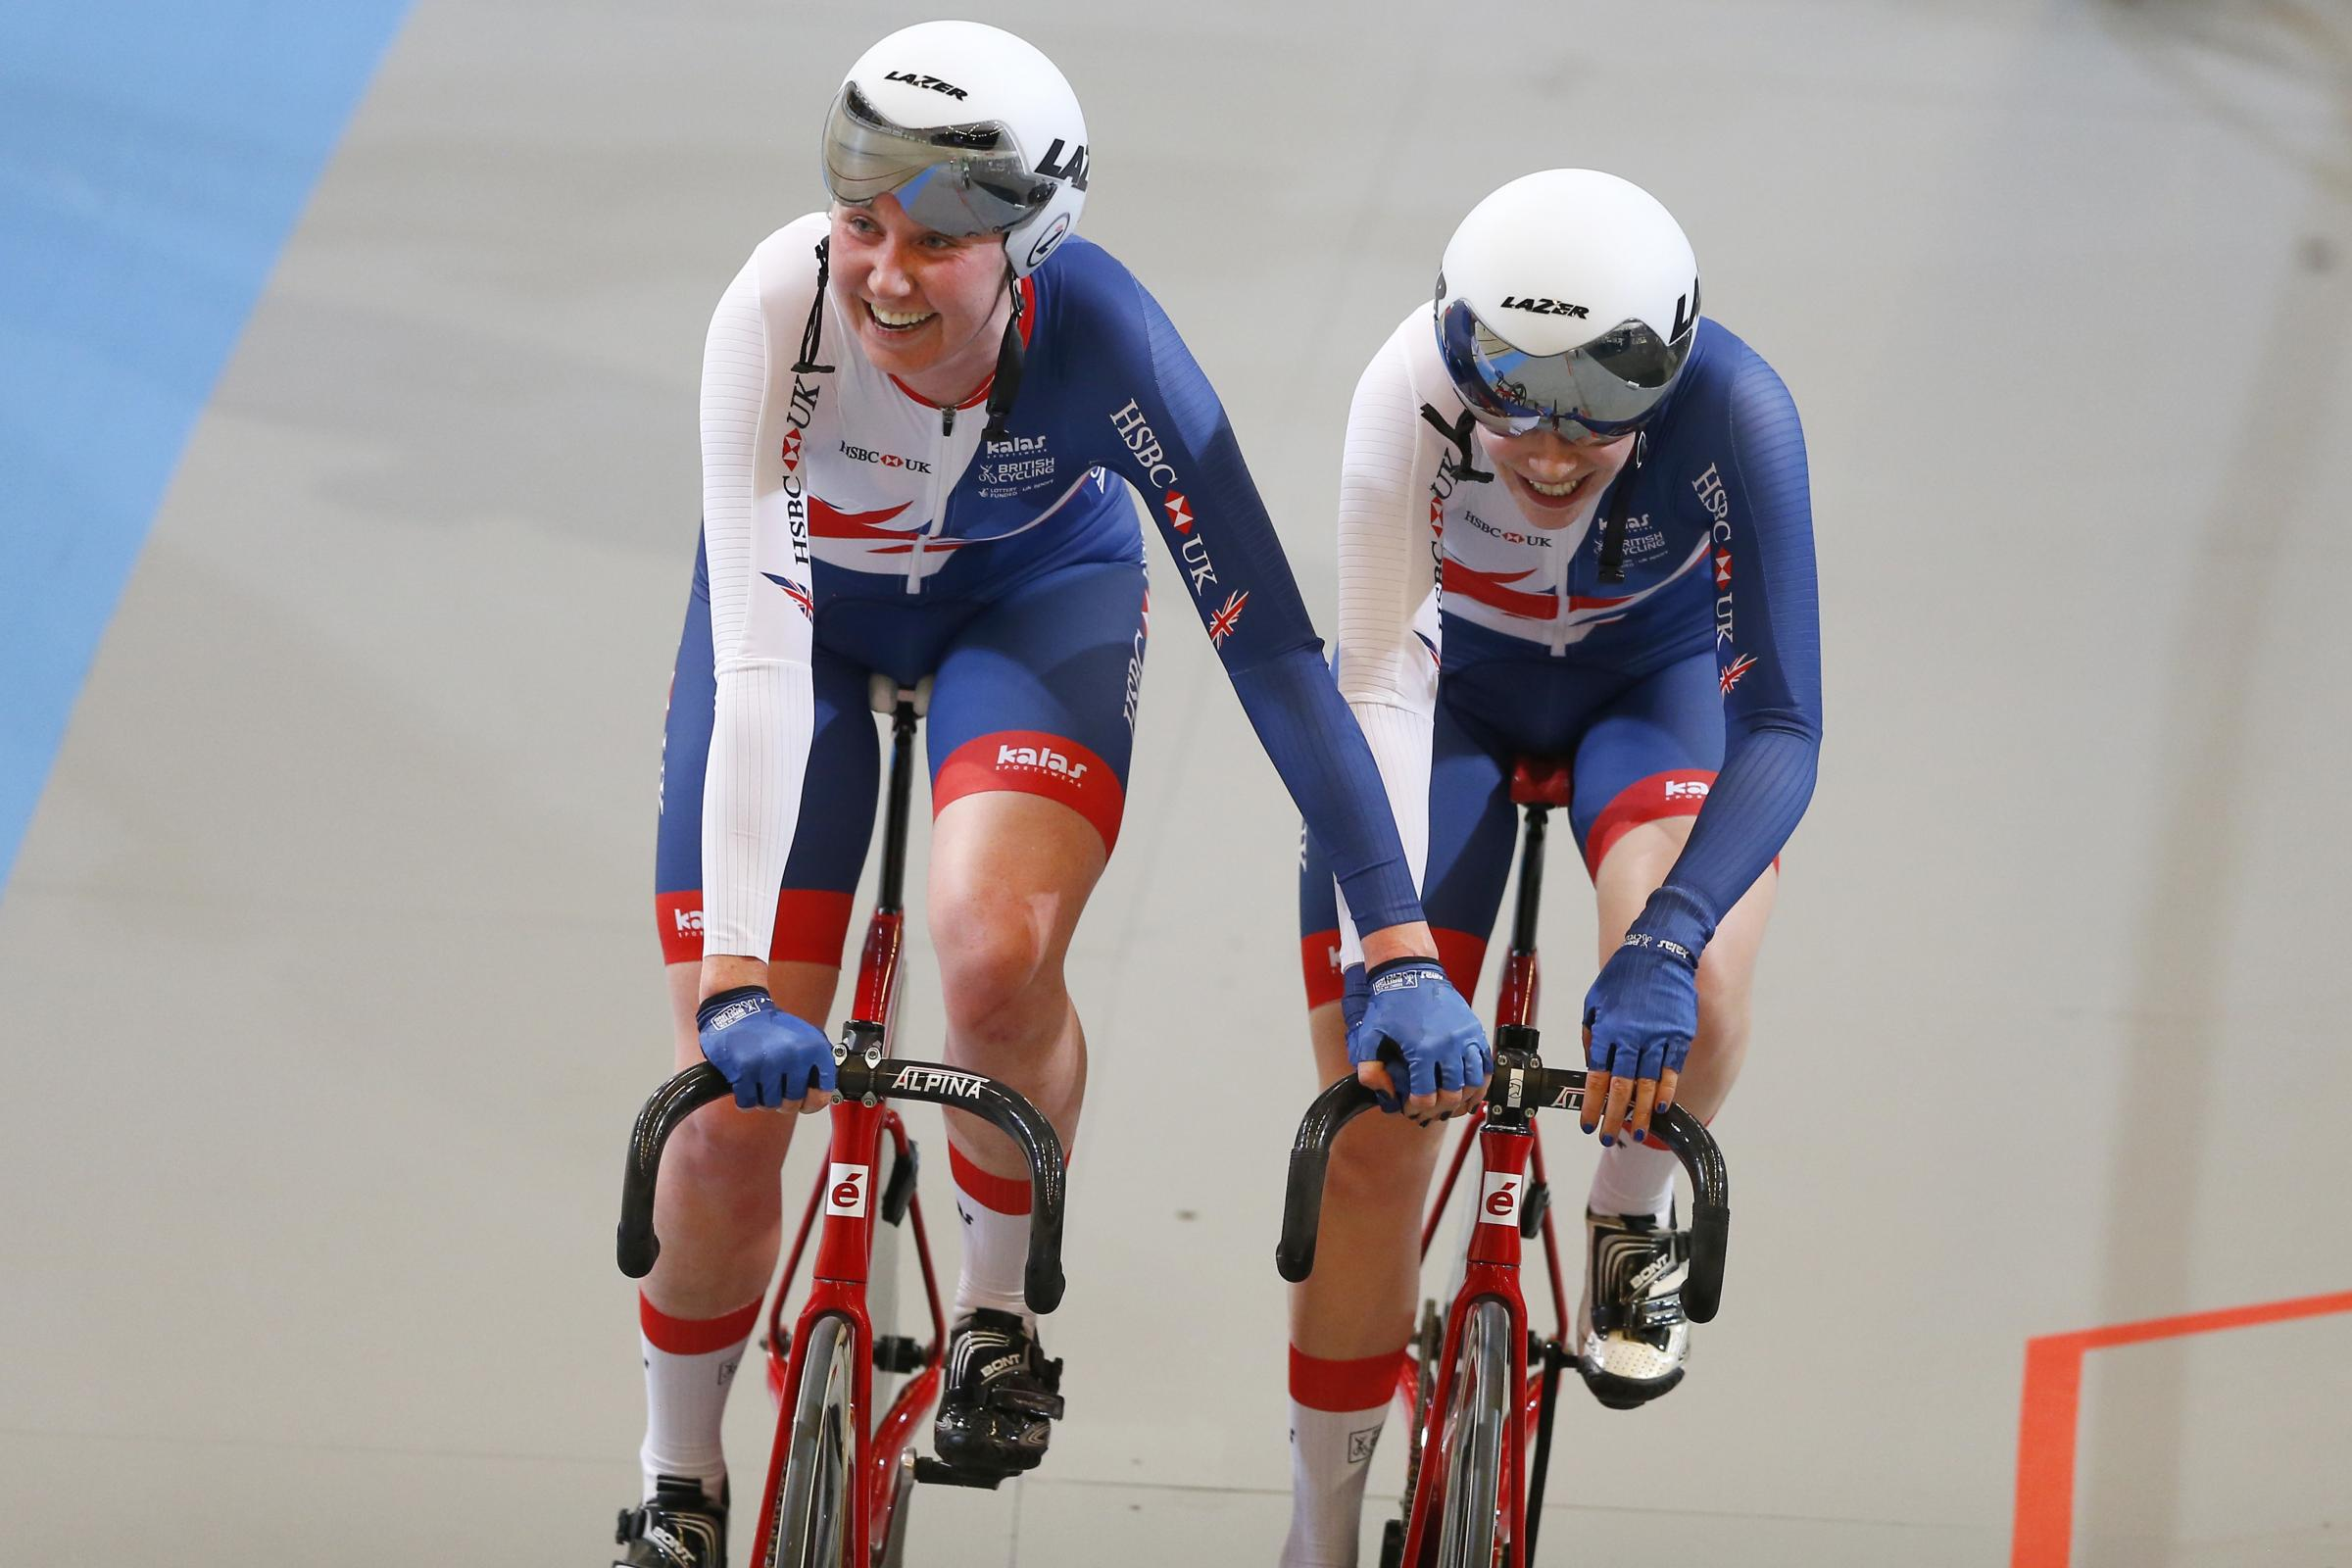 Katie Archibald, left, and Emily Nelson won World Championships gold in the Netherlands (Picture: AP Photo/Peter Dejong)